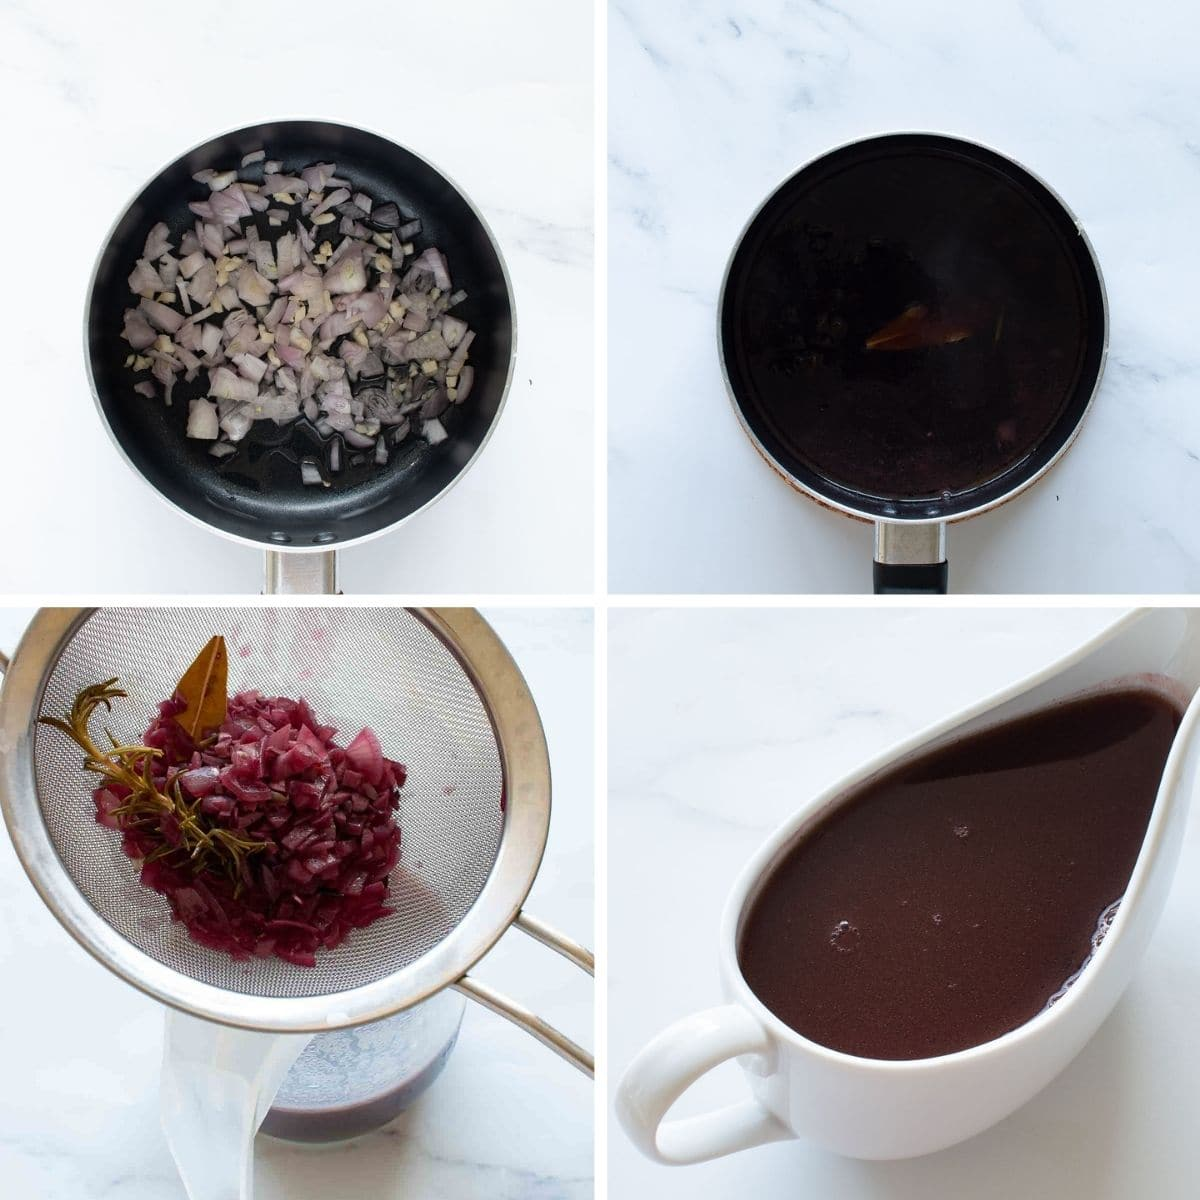 Step by step images showing how to make red wine jus.